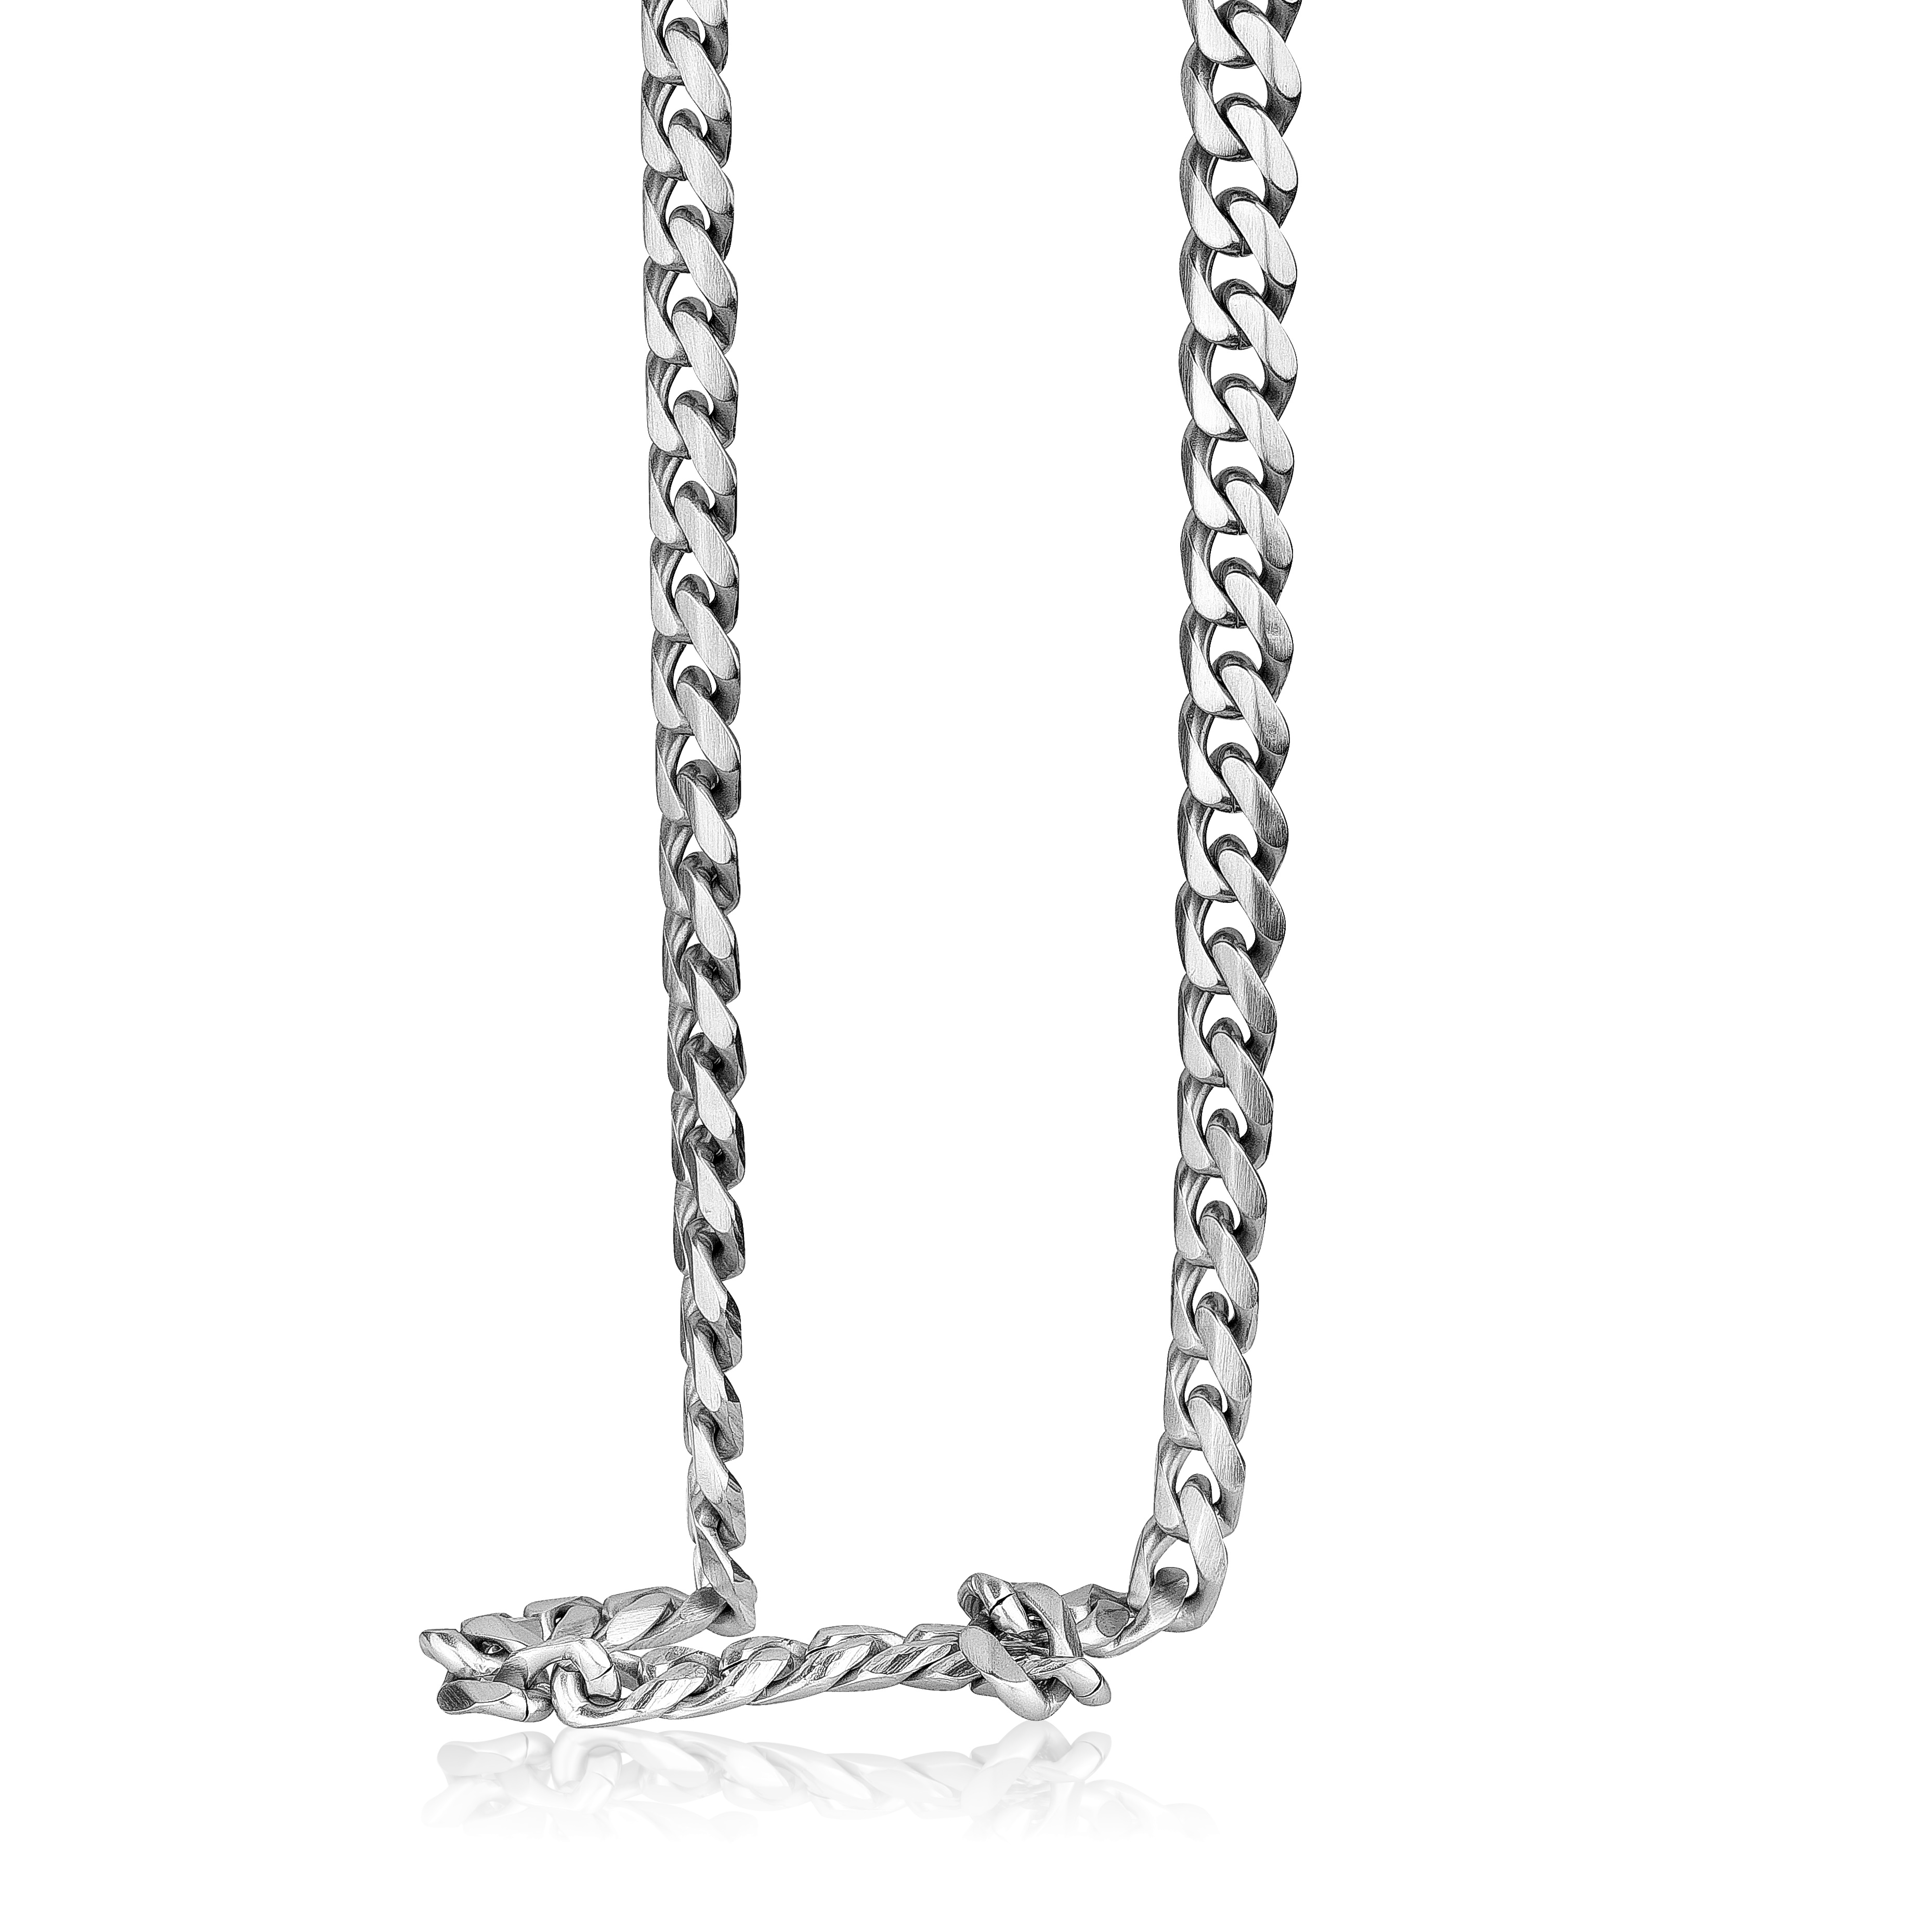 Curb chain  22-24'' for men - Stainless steel